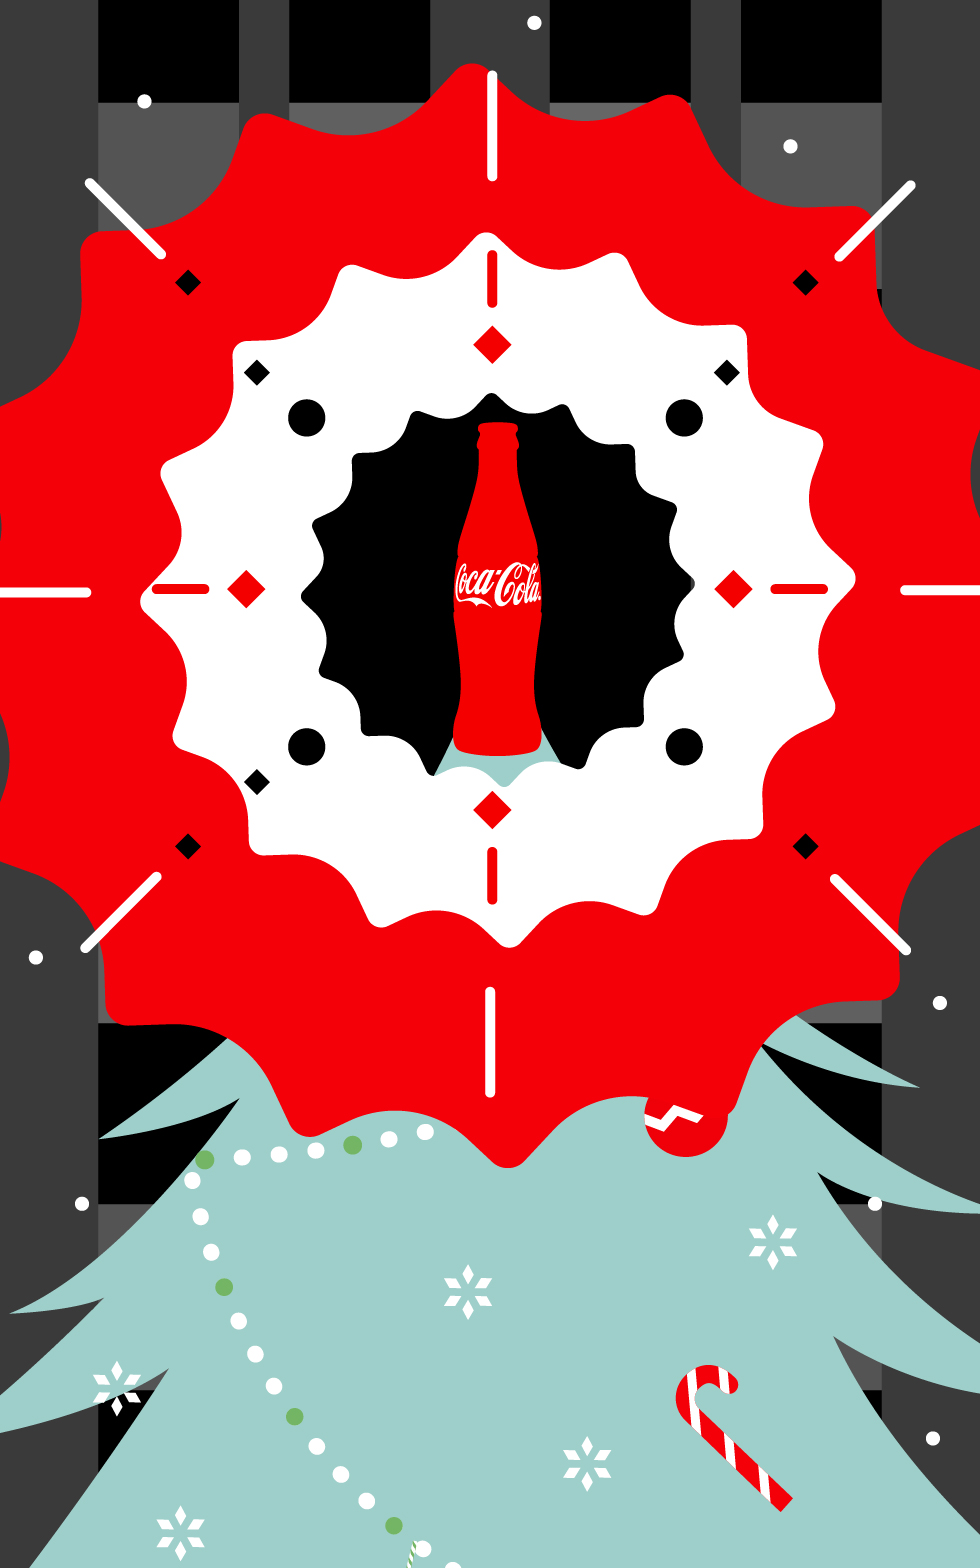 Coke_Holiday_v08_YM_2 copy 6.jpg